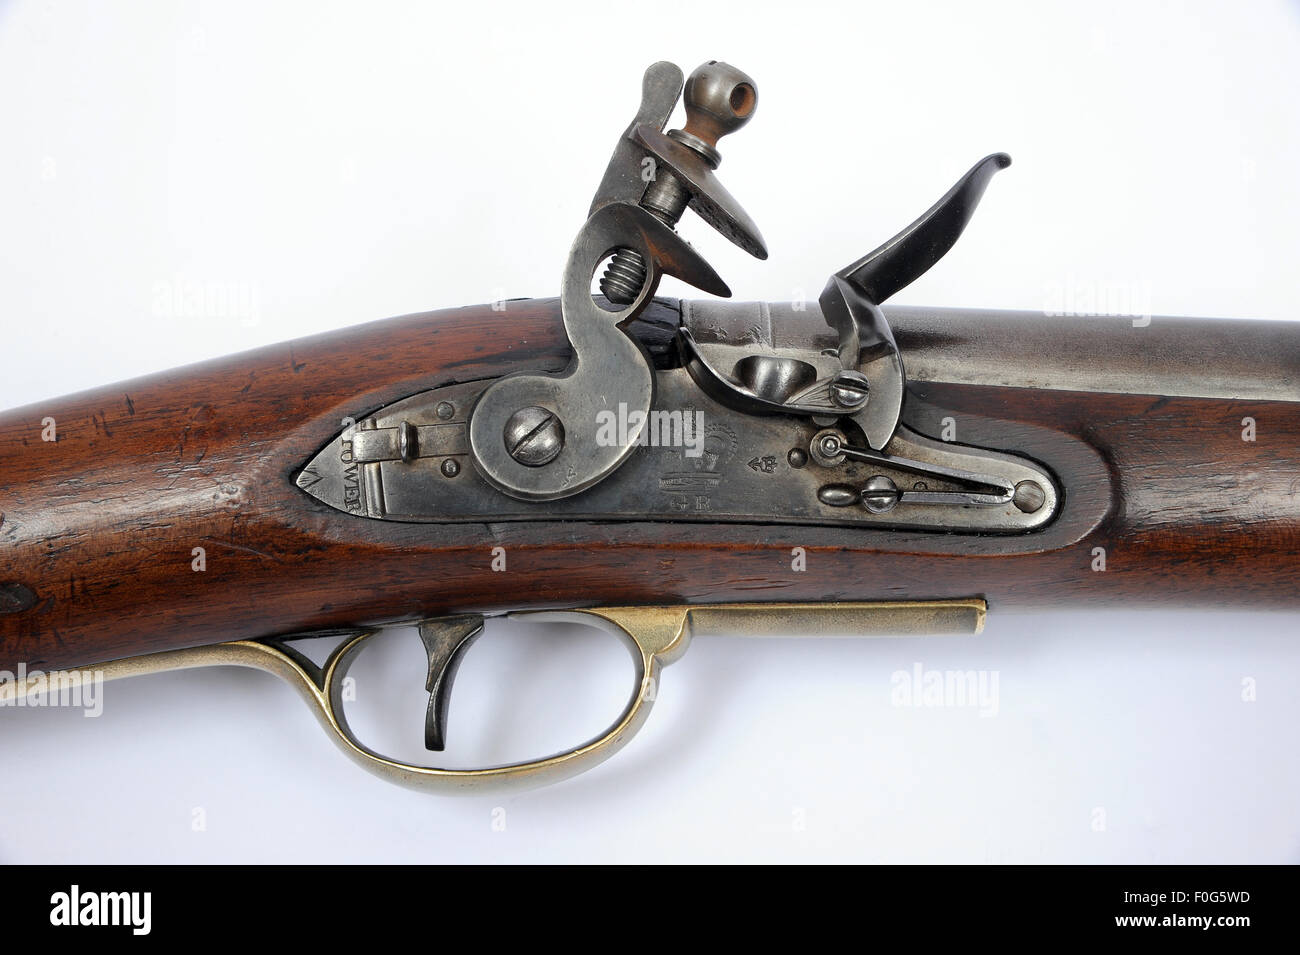 A very rare example of the 1808 Paget Cavalry flintlock carbine as used during the Georgian period and typical of - Stock Image